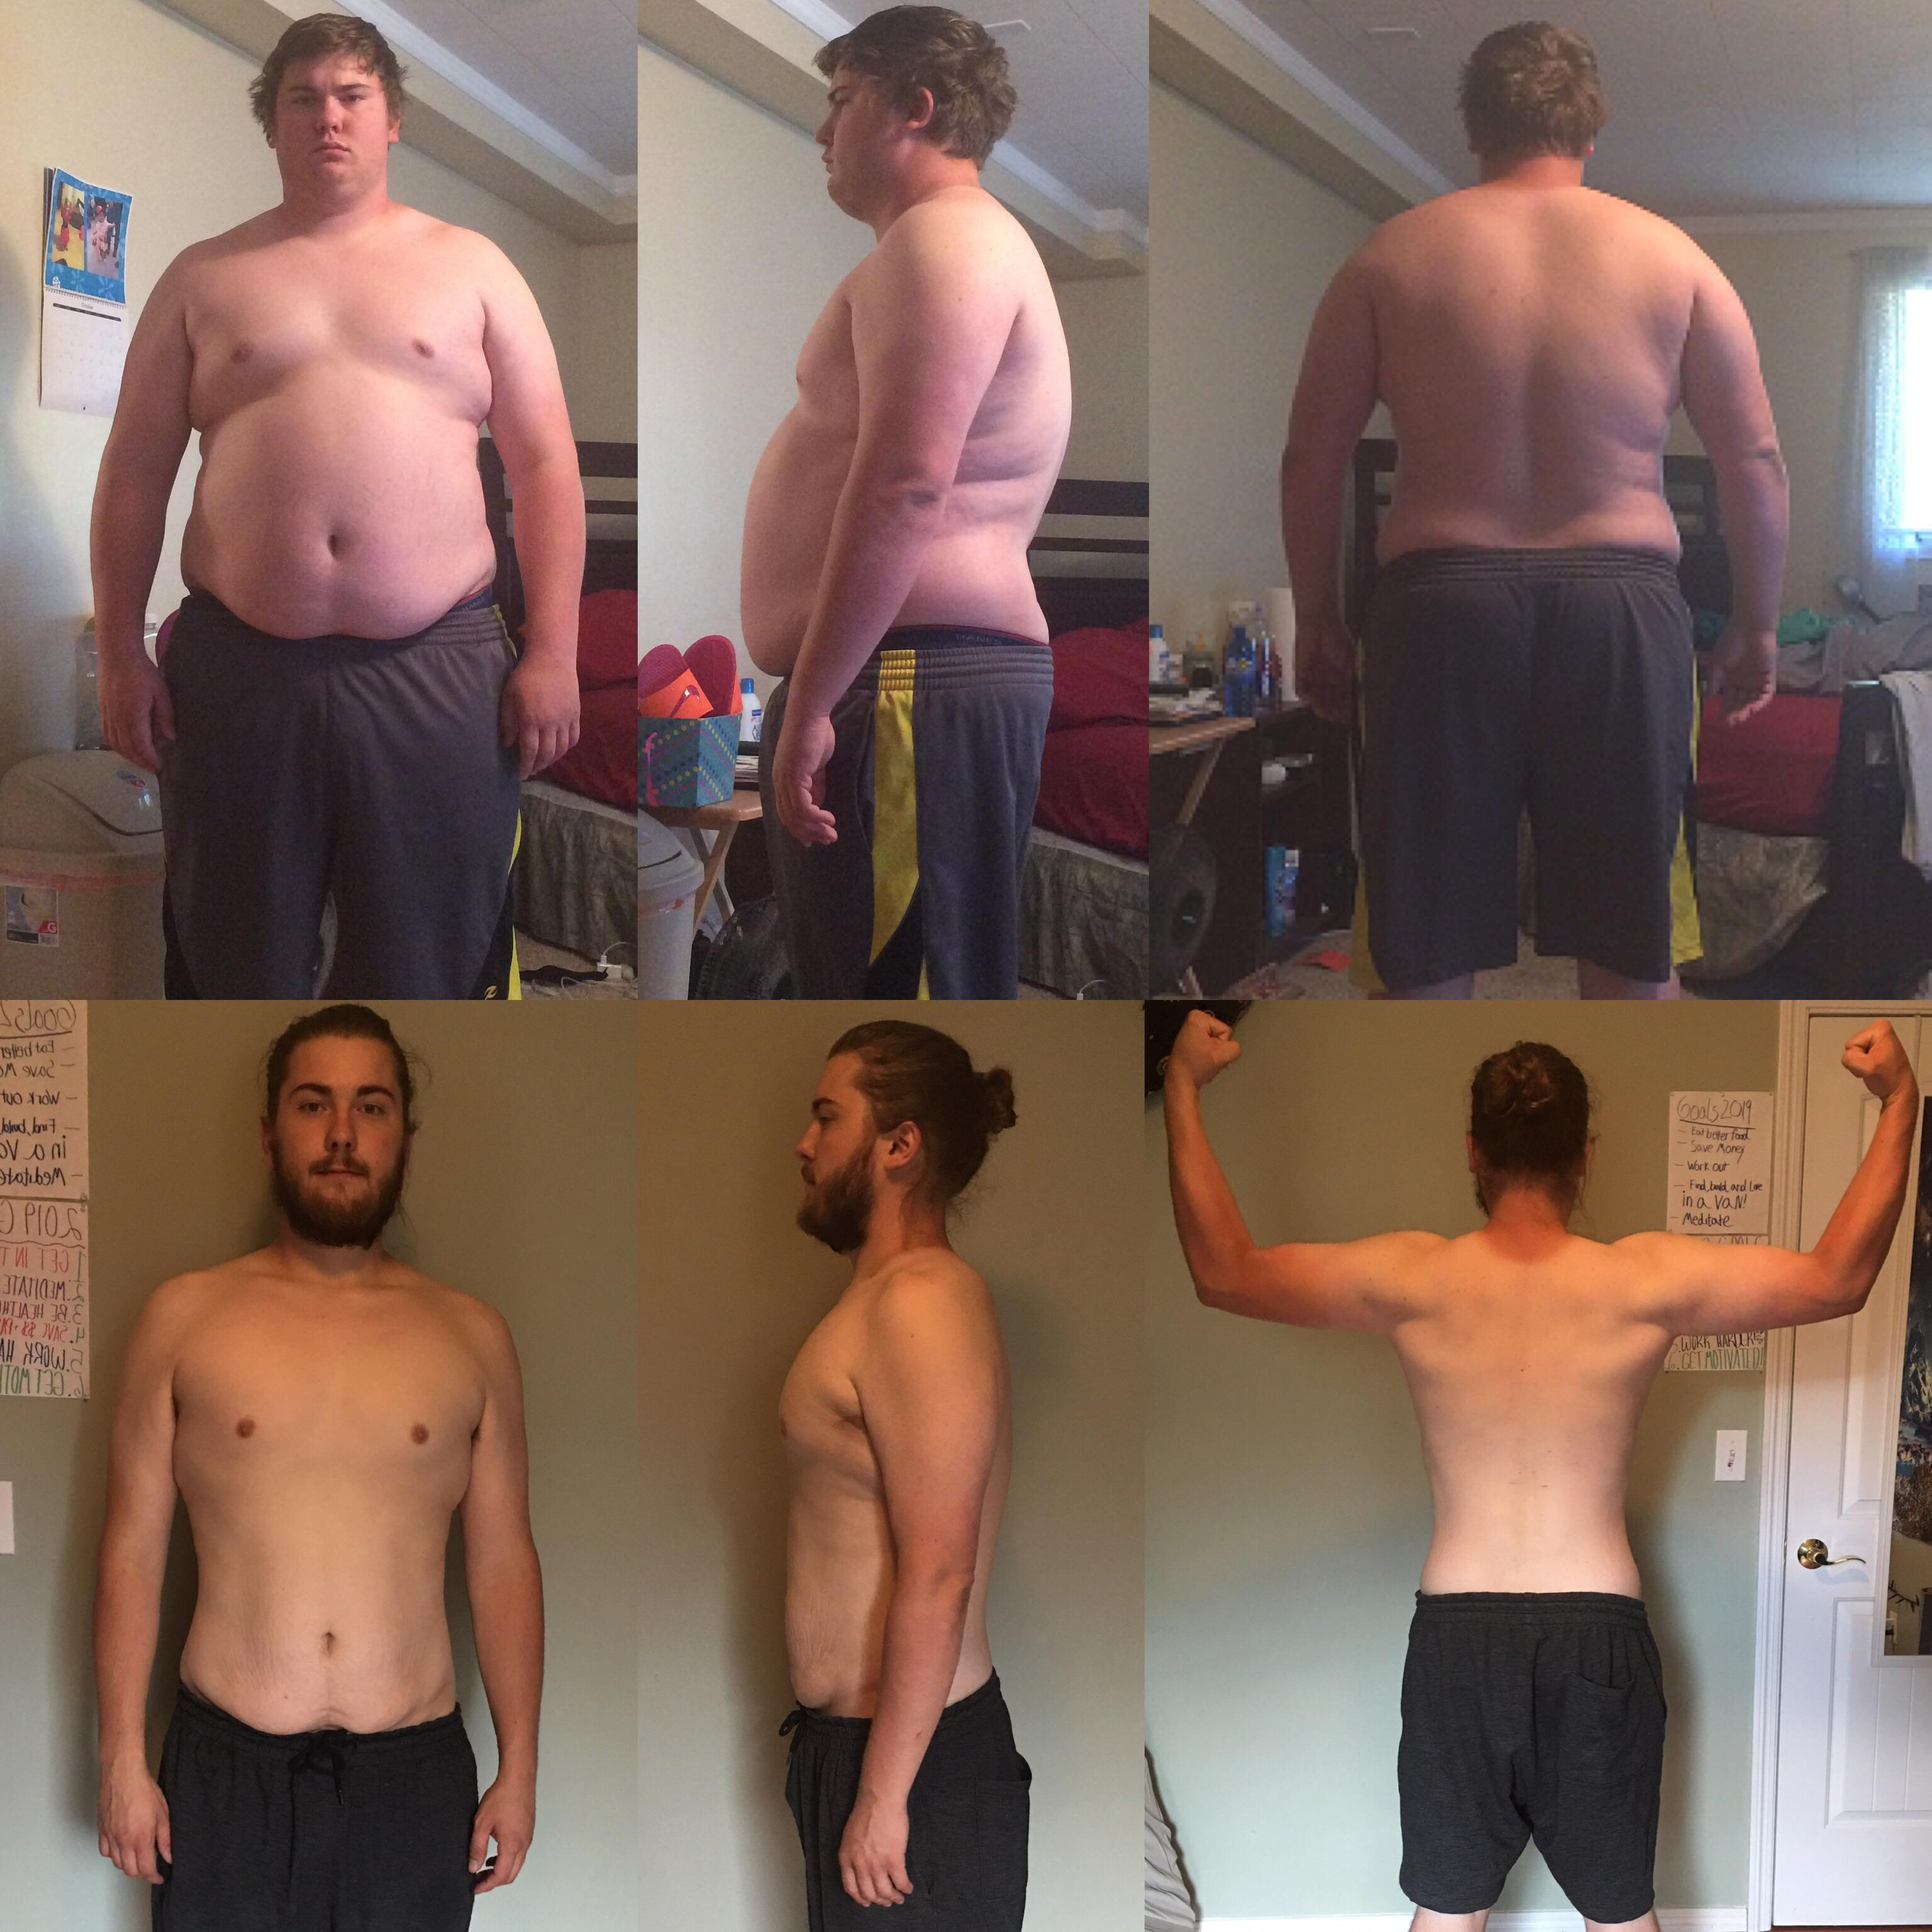 6 foot Male Before and After 100 lbs Fat Loss 310 lbs to 210 lbs